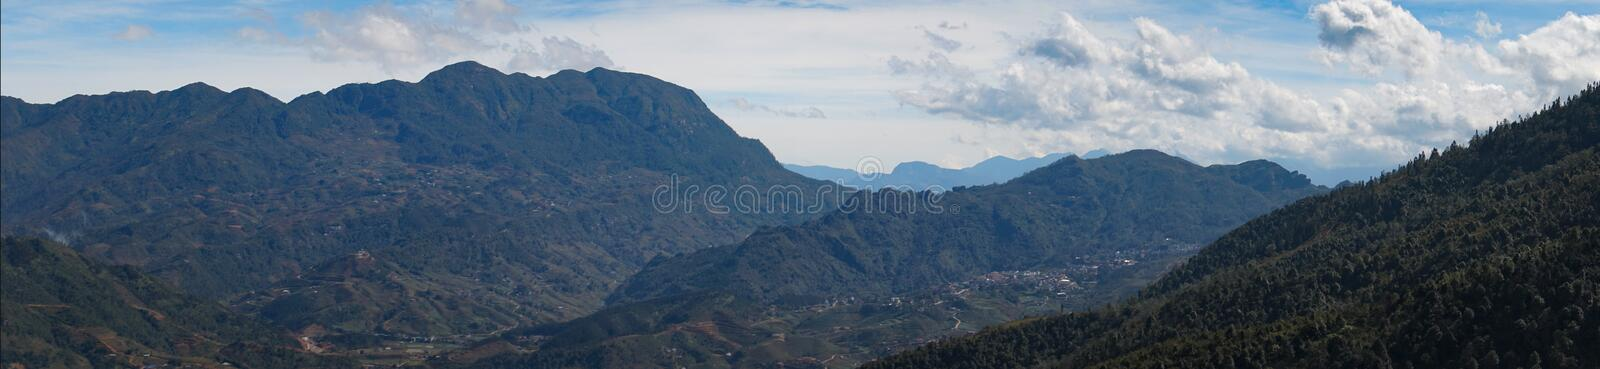 Panorama of Vietnam  longest mountain pass. O Quy Ho Mountain Pass, Sapa, Vietnam is Vietnam`s longest mountain pass. Panorama of Vietnam`s longest mountain pass royalty free stock images